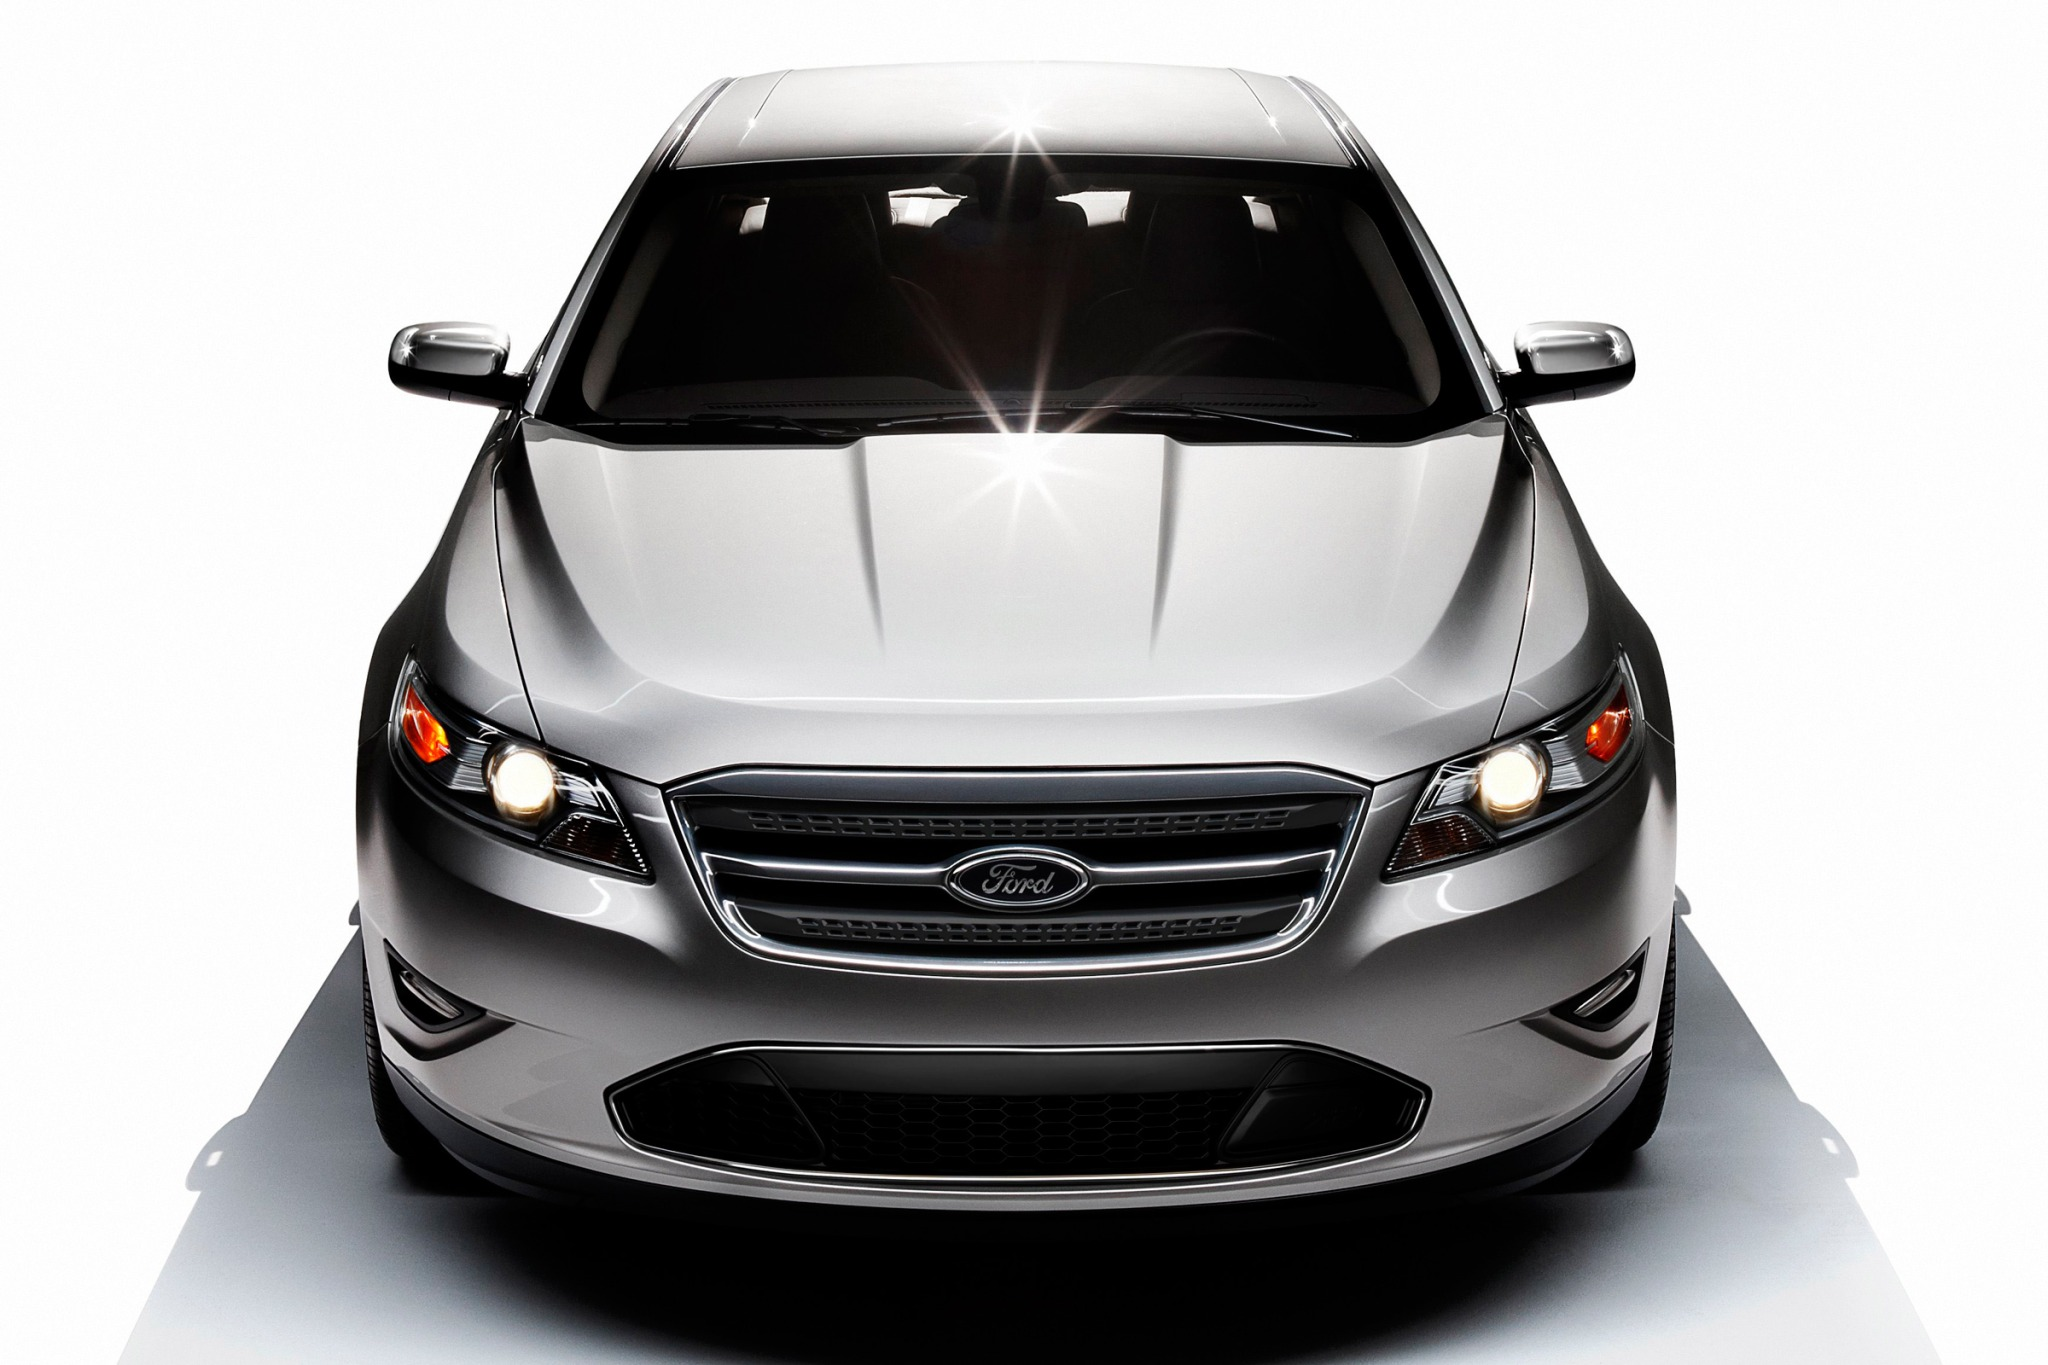 2010 Ford Taurus Limited  exterior #7